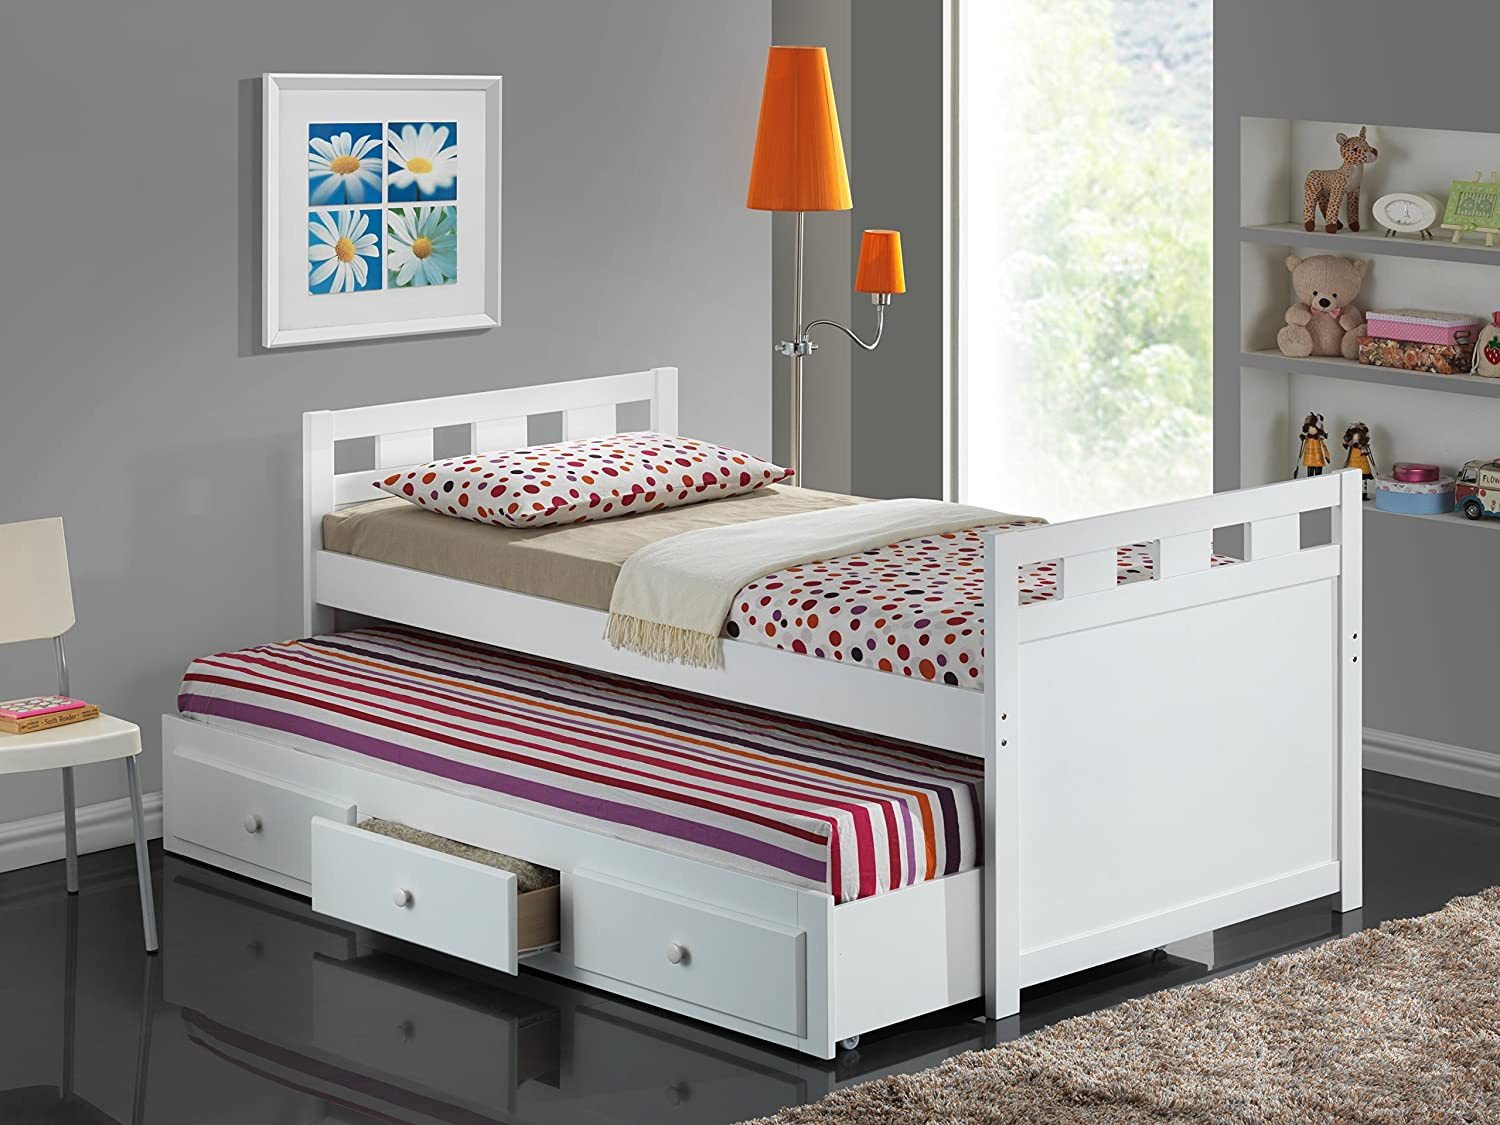 Broyhill Kids Breckenridge Captains Bed With Trundle And Drawers White Amazoncouk Kitchen Home